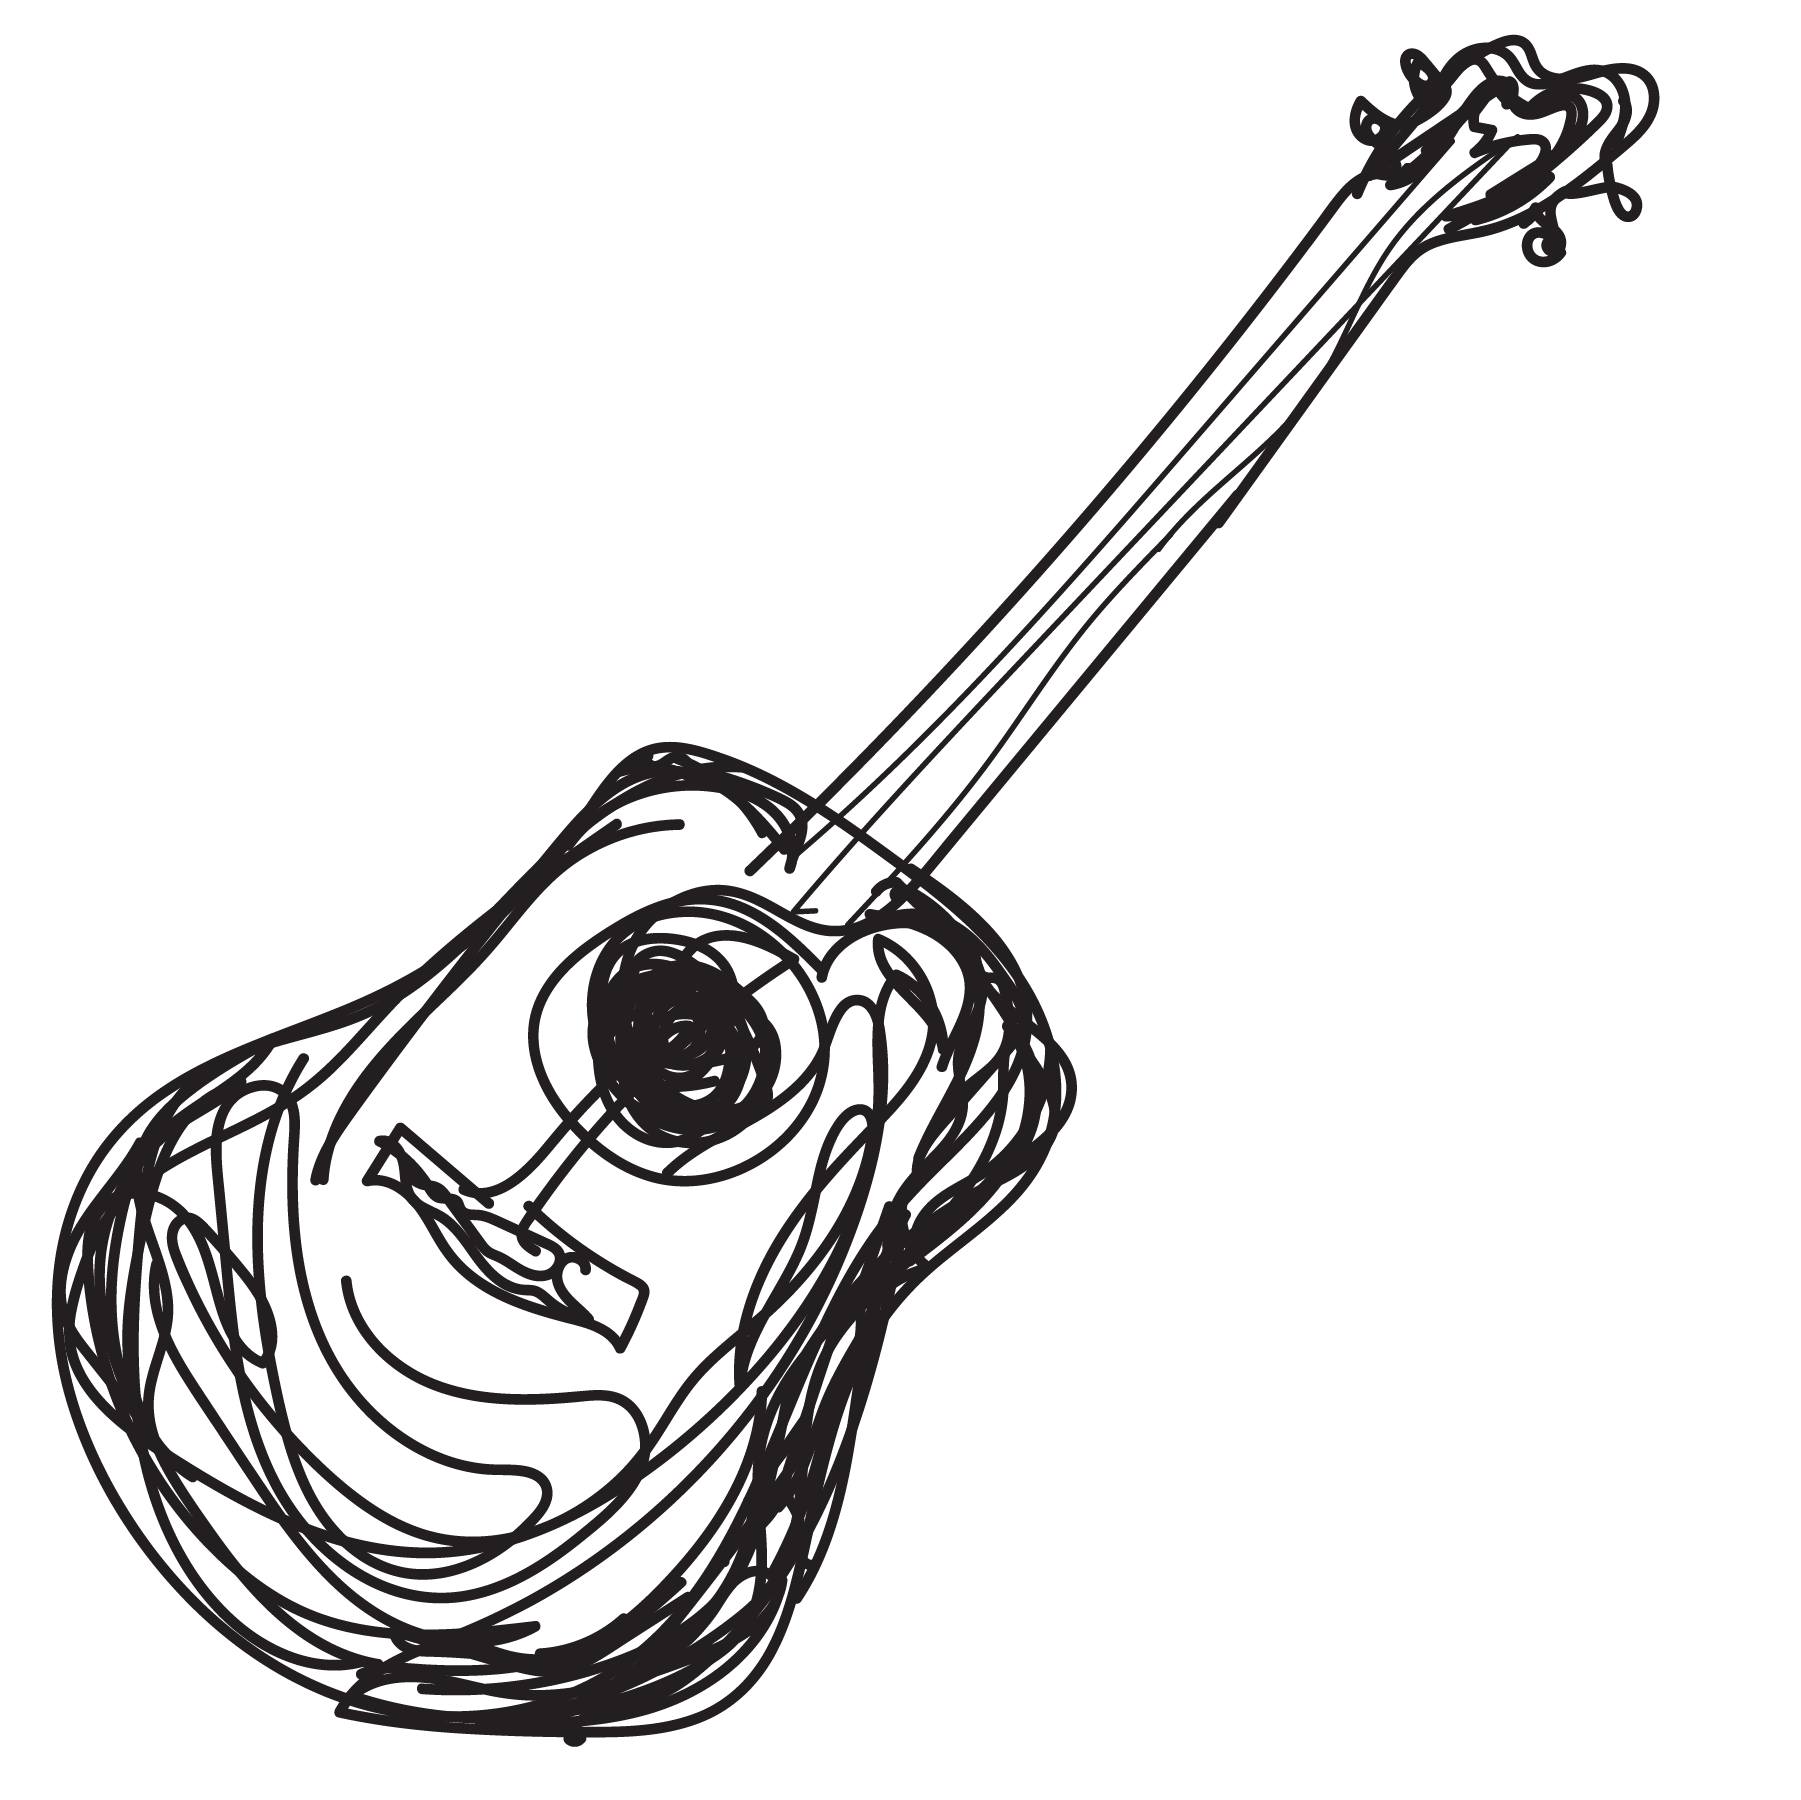 sketch of a ukulele